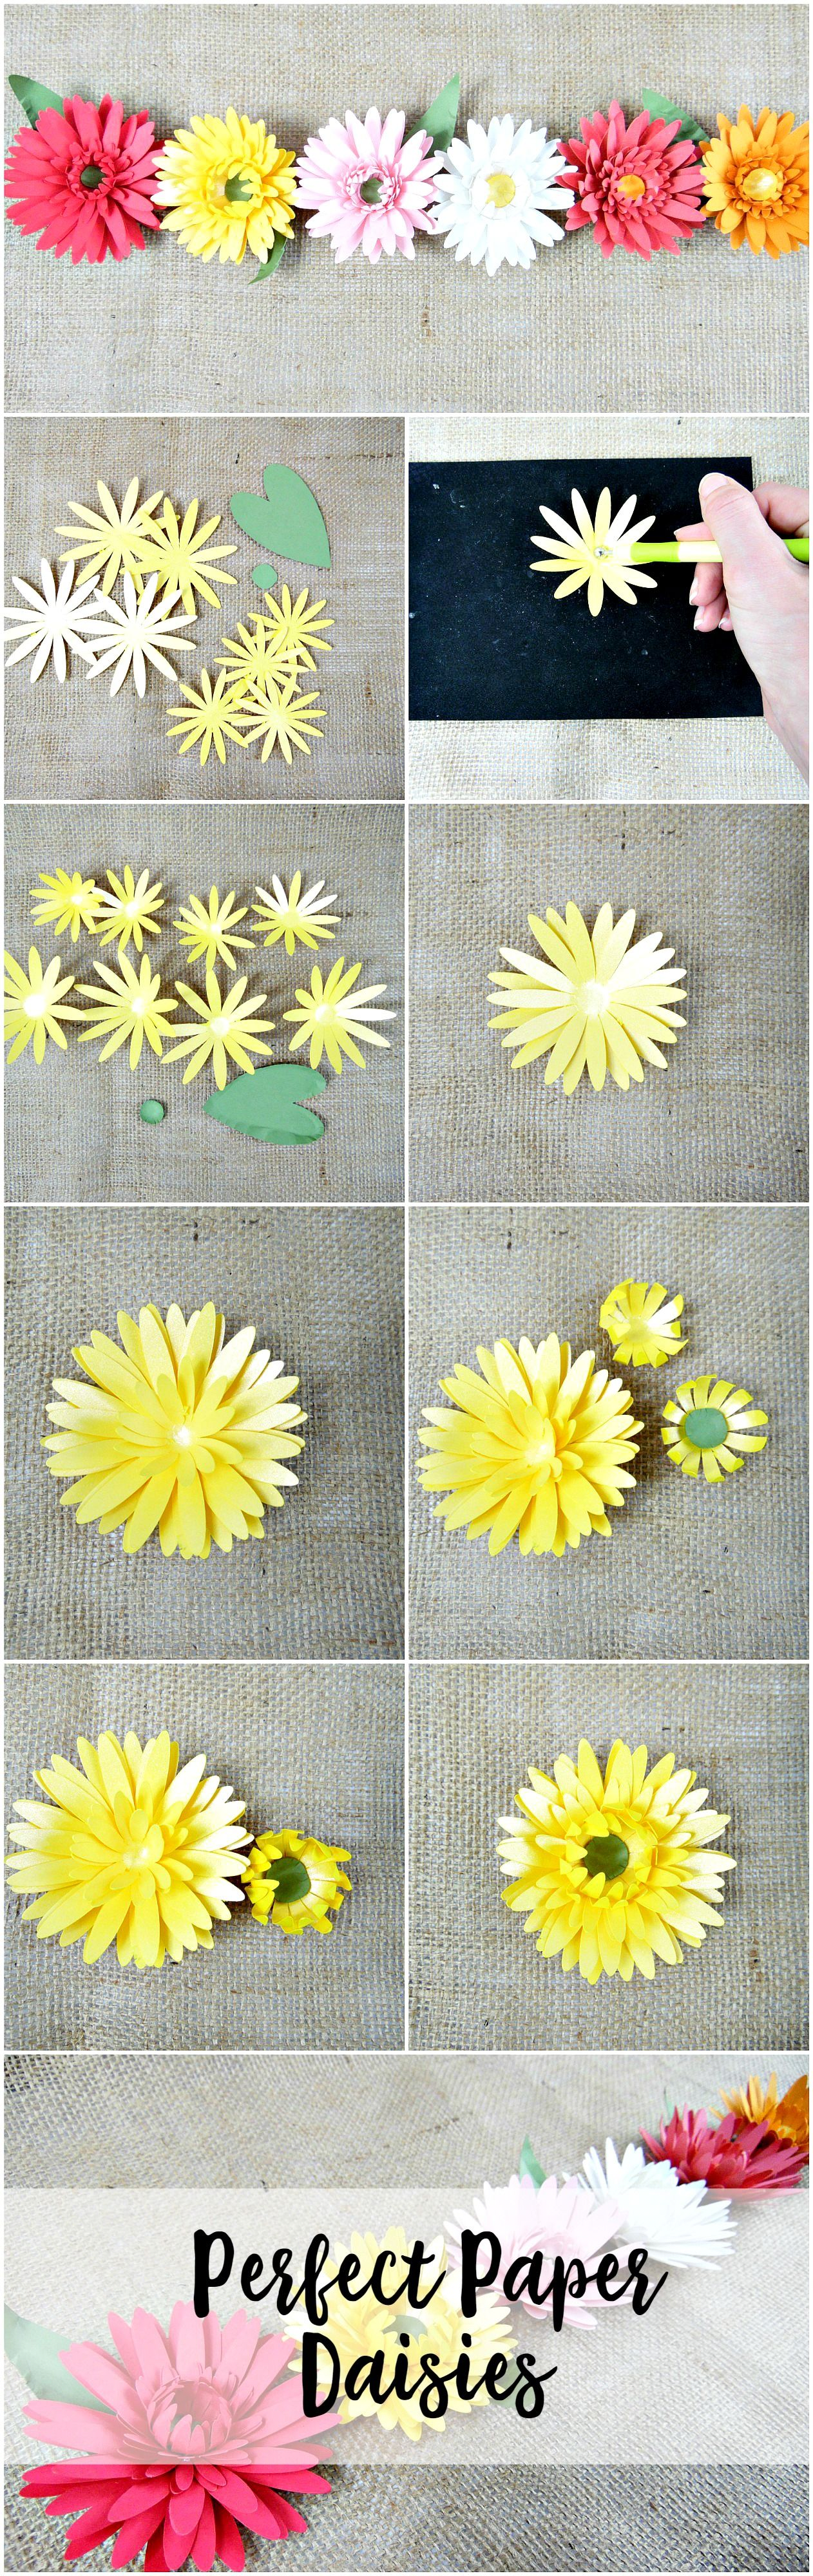 Paper flowers daisy flower templates svg flower cut files svg paper daisy how to instructions diy paper flowers printable templates izmirmasajfo